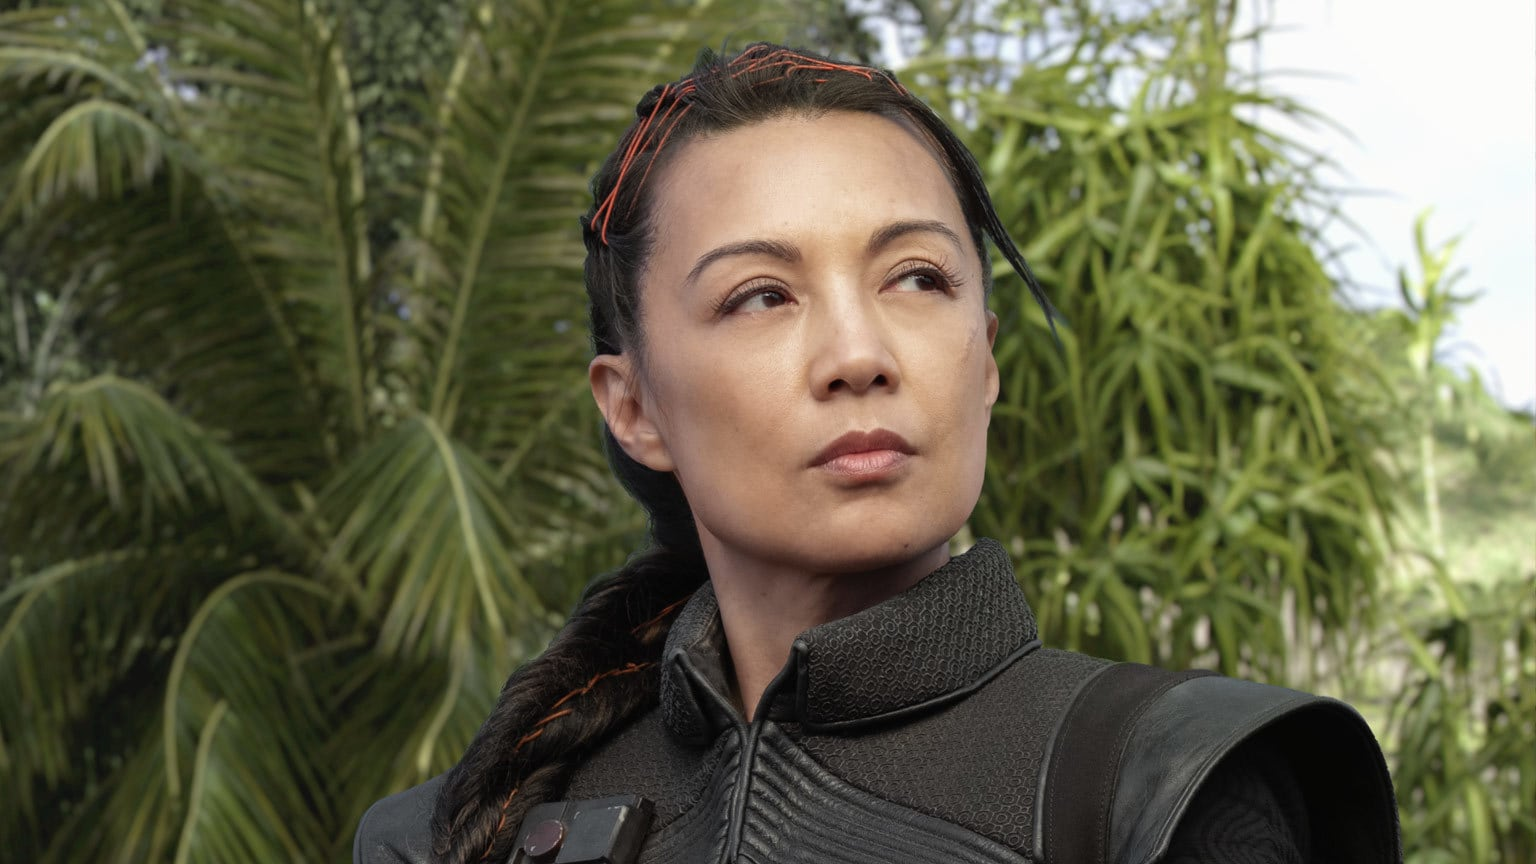 The Return of Fennec Shand: Ming-Na Wen on Finding her Voice as the Elite Assassin in The Mandalorian